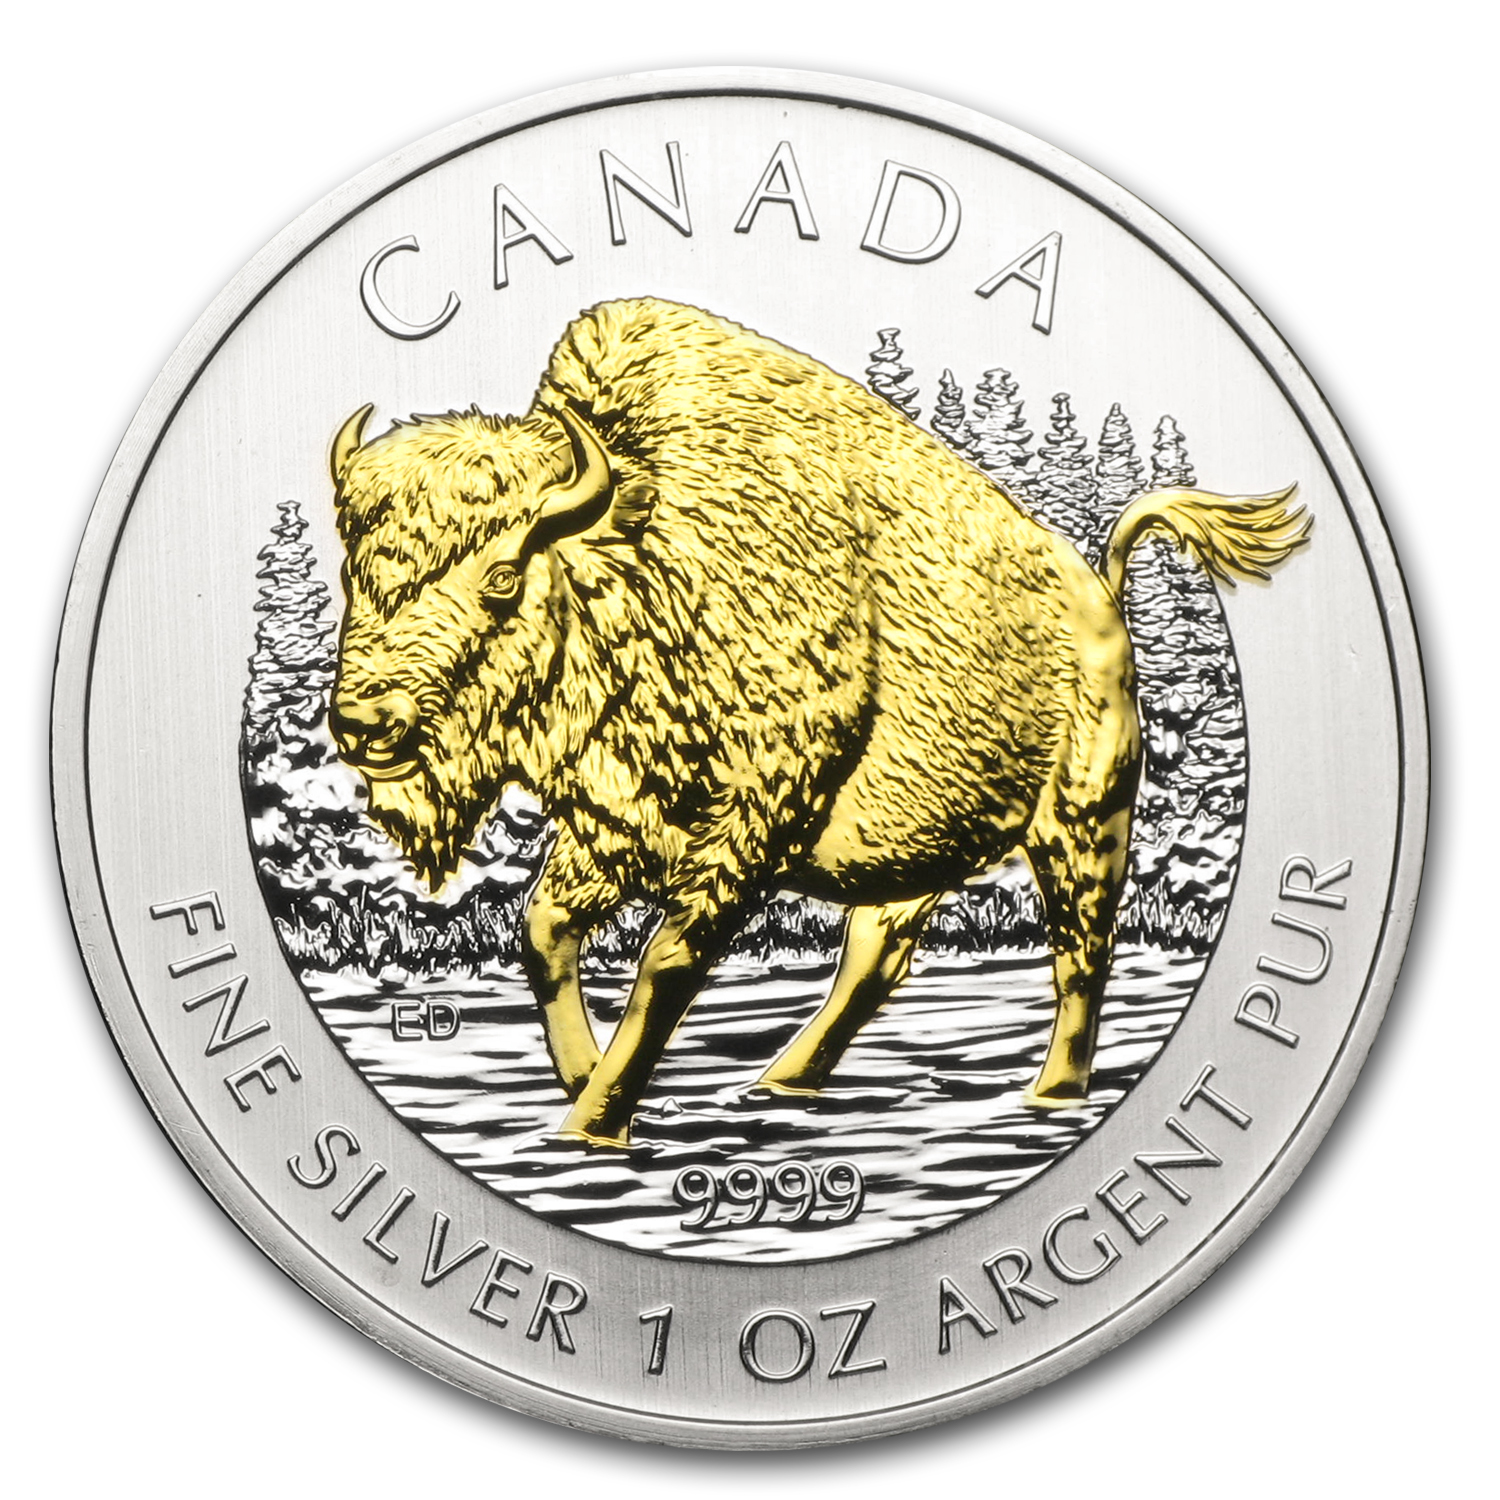 2013 Canada 1 oz Silver Wildlife Series Wood Bison (Gilded)